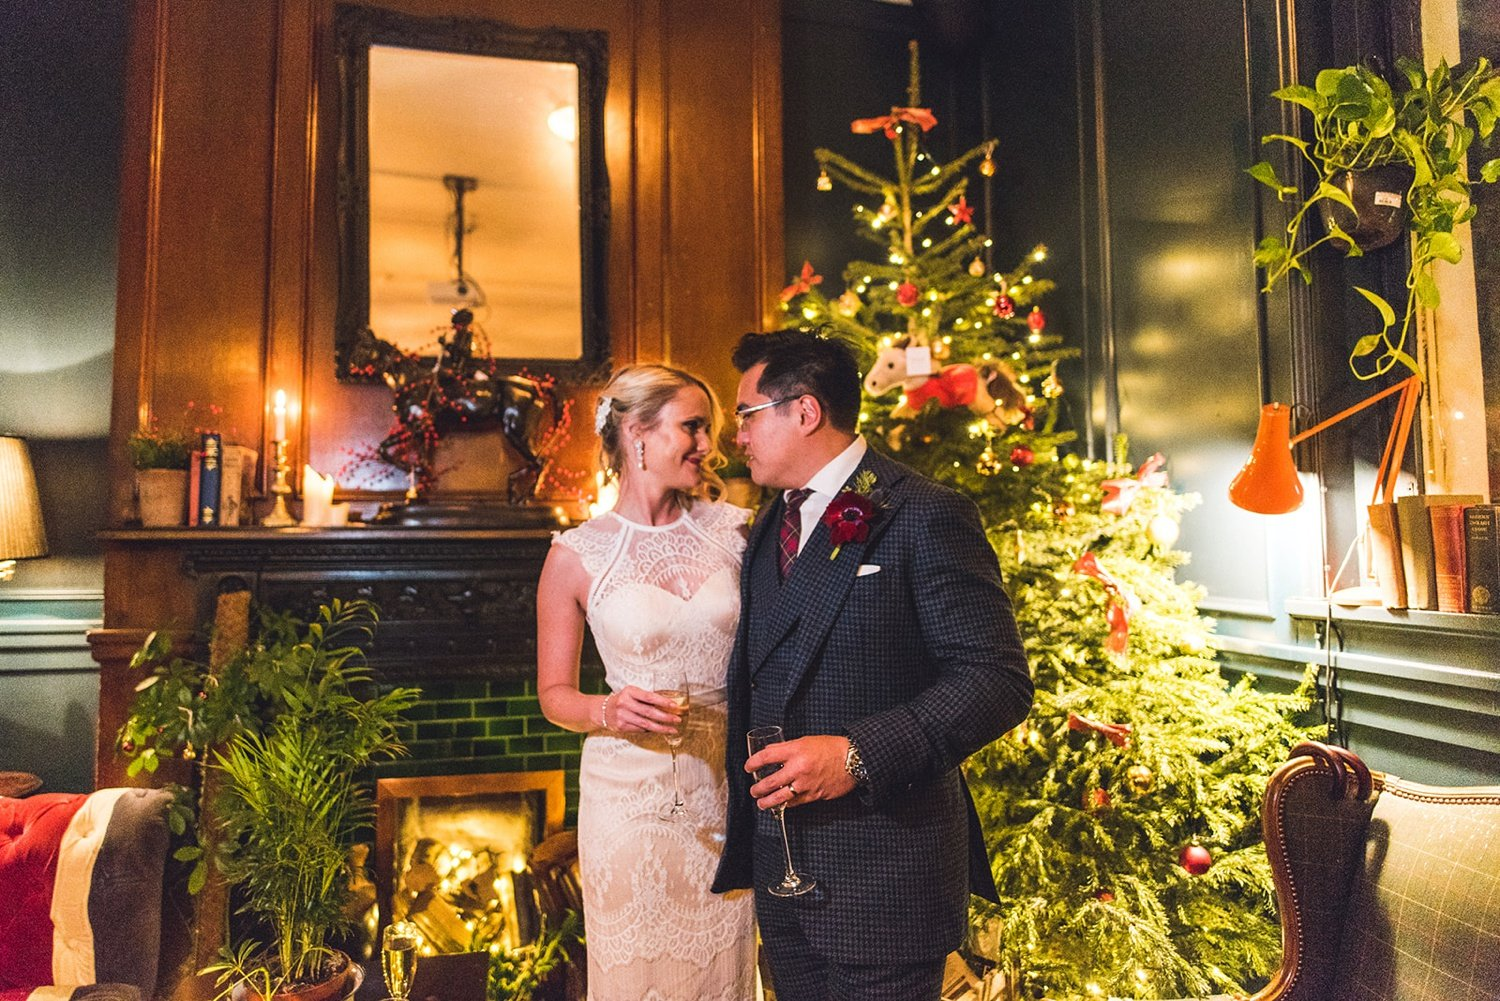 Bride and groom in front of Christmas tree at London pub